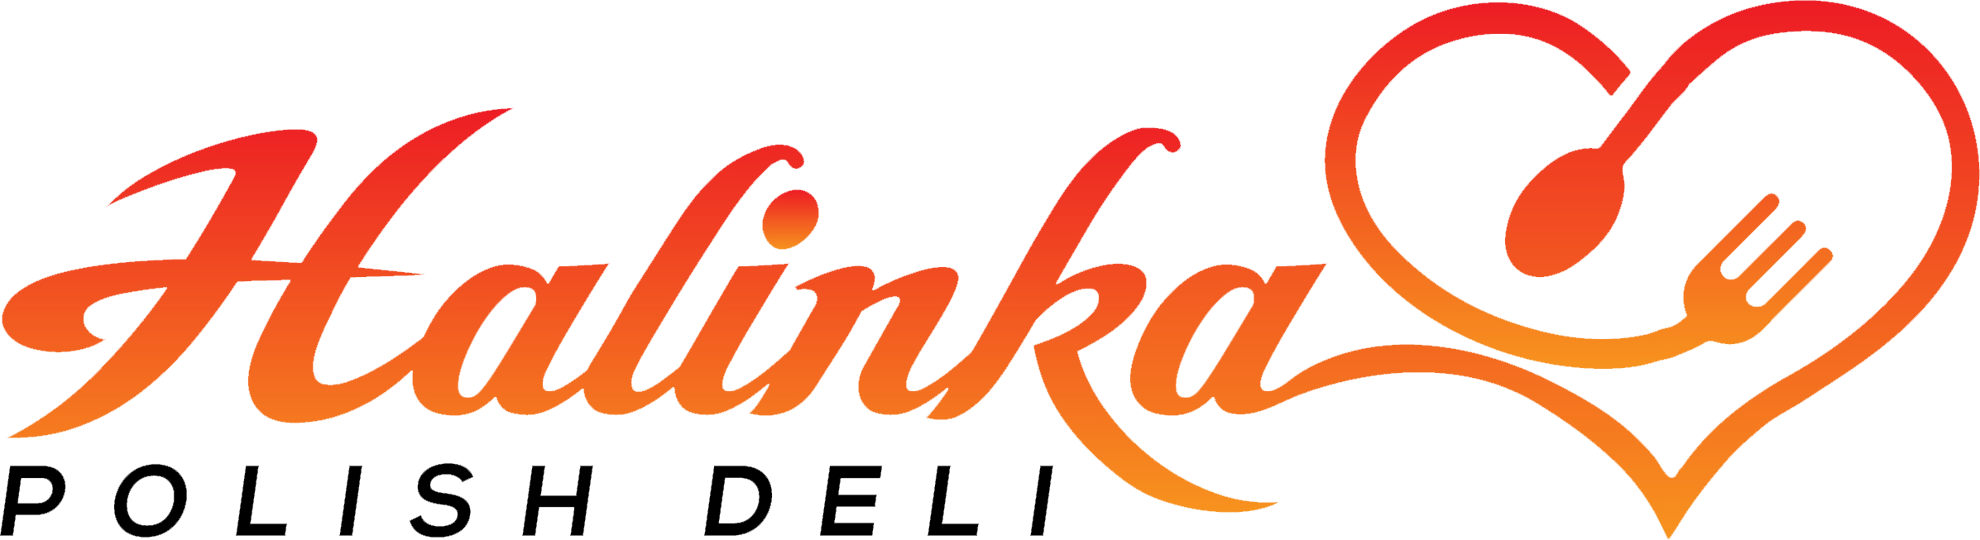 Halinka Polish Deli